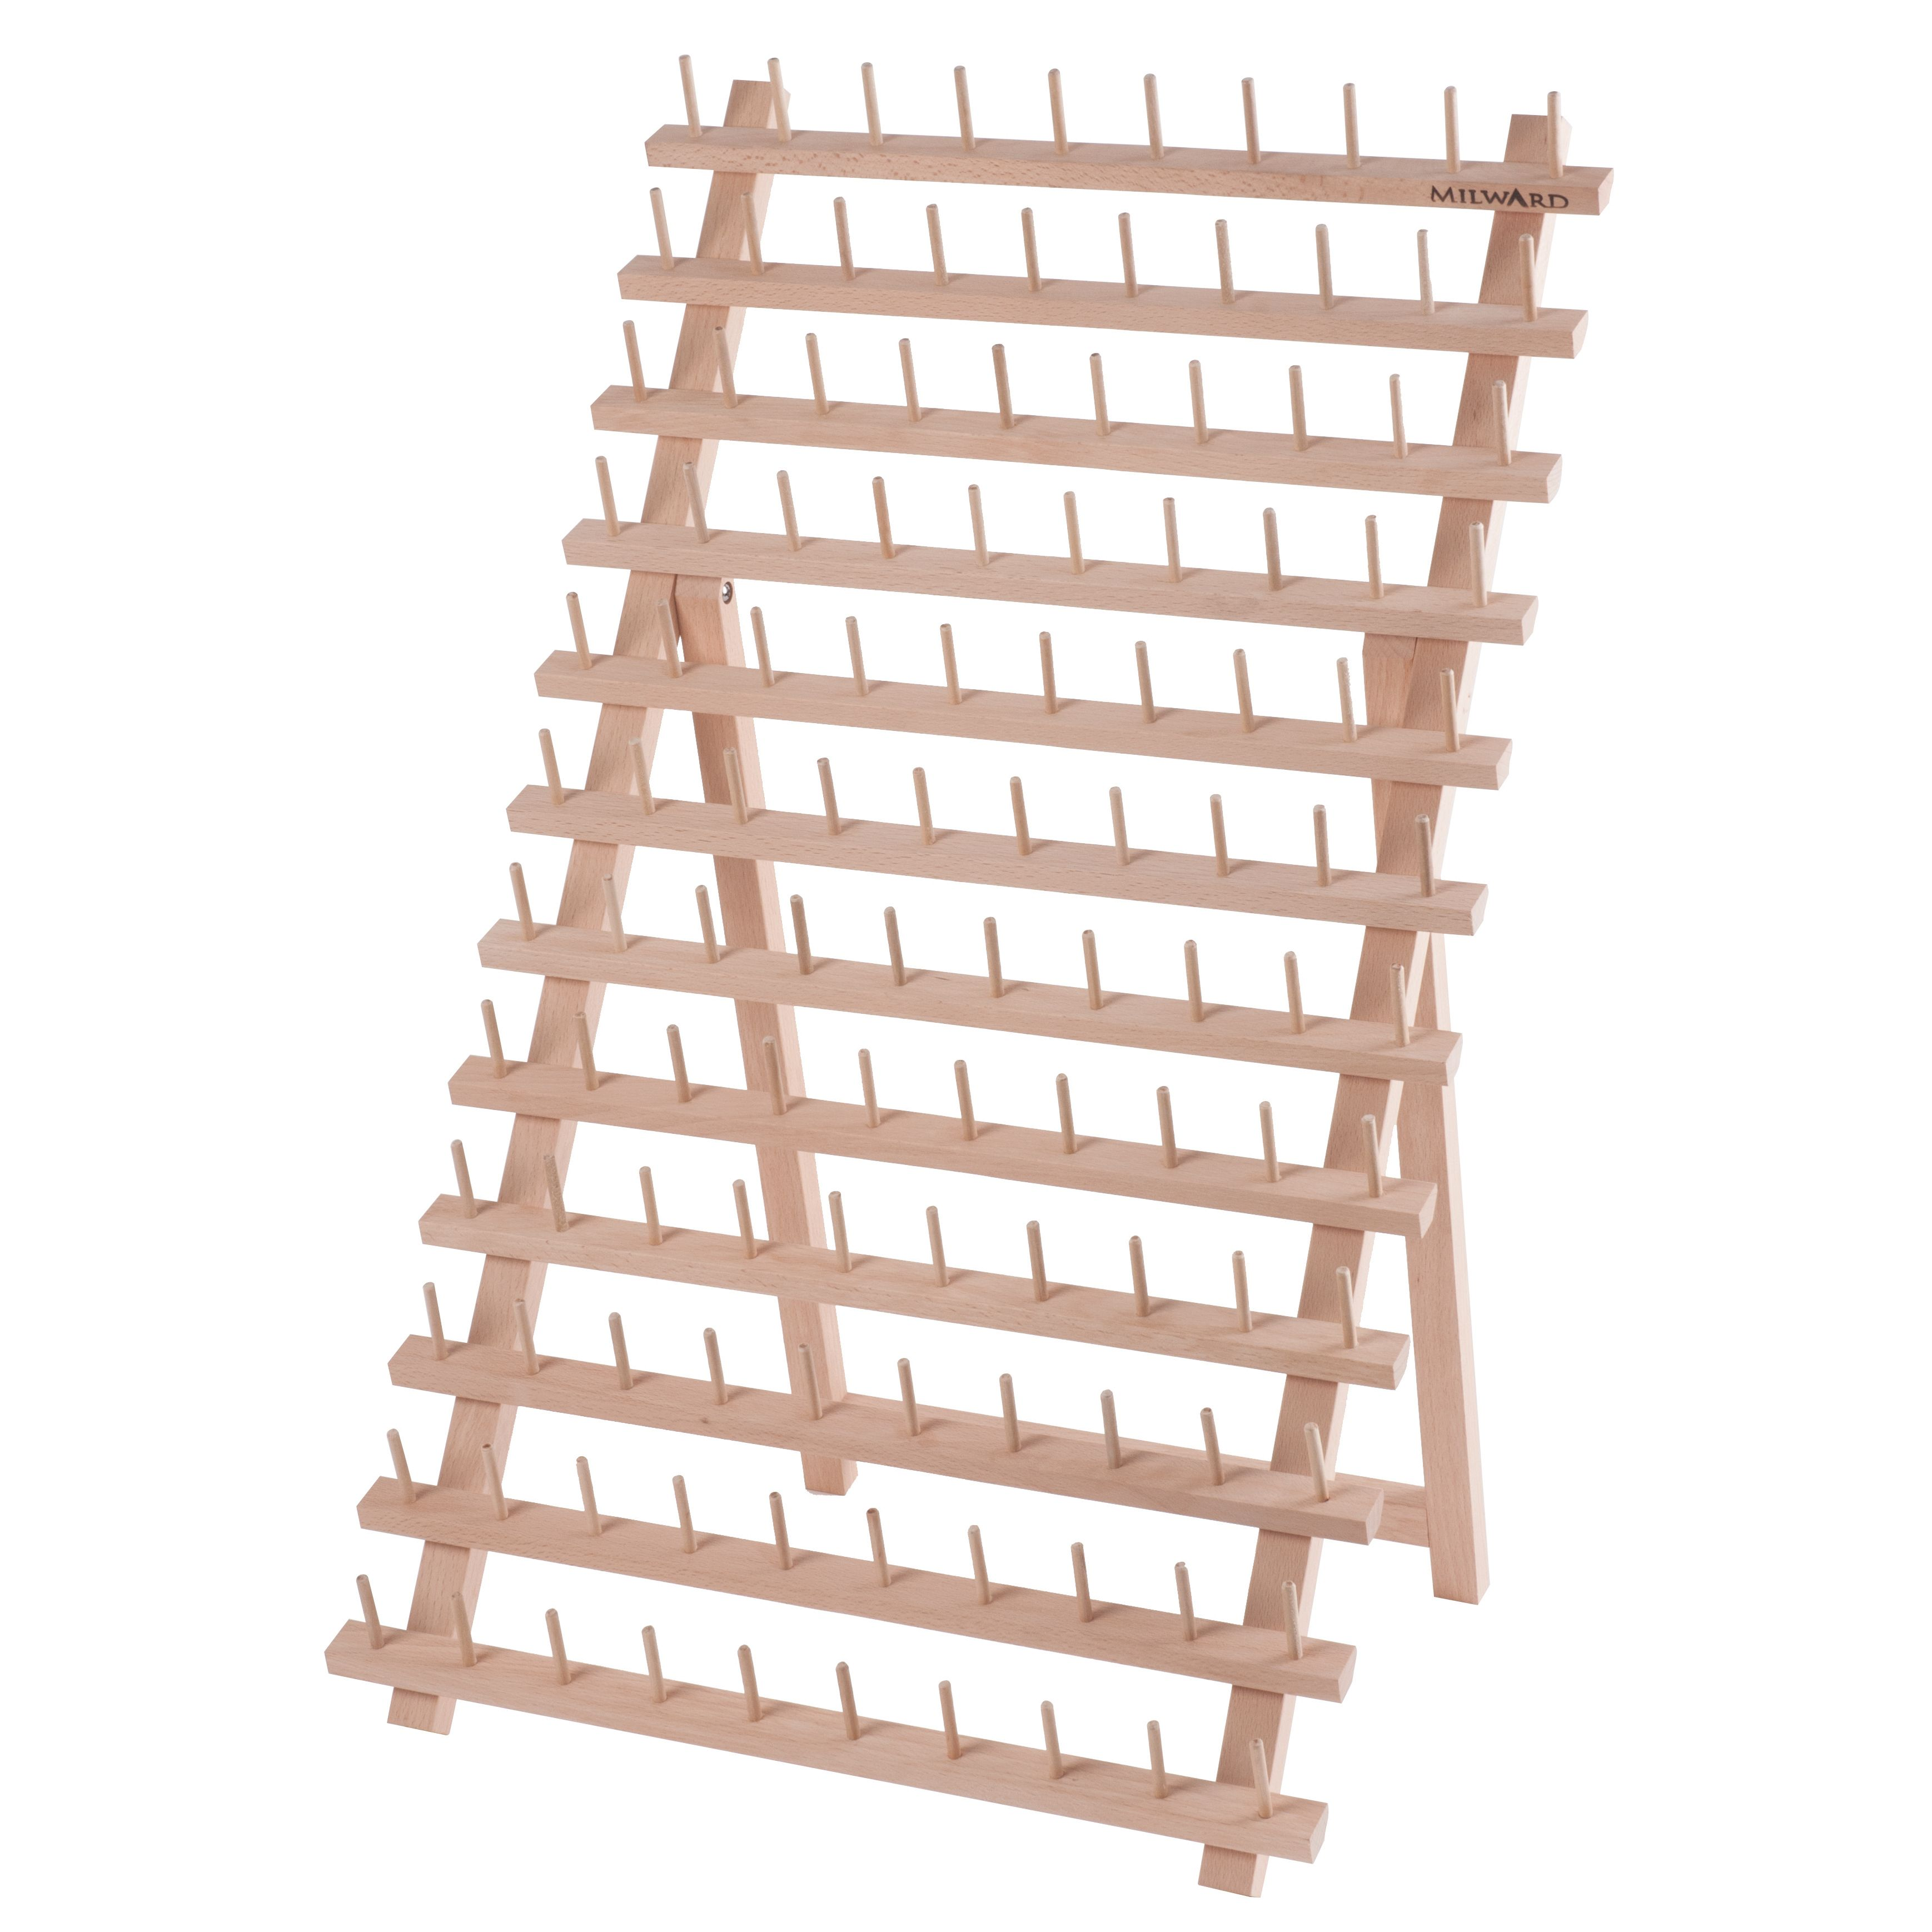 Milward 120 Spool Beech Wood Thread Rack